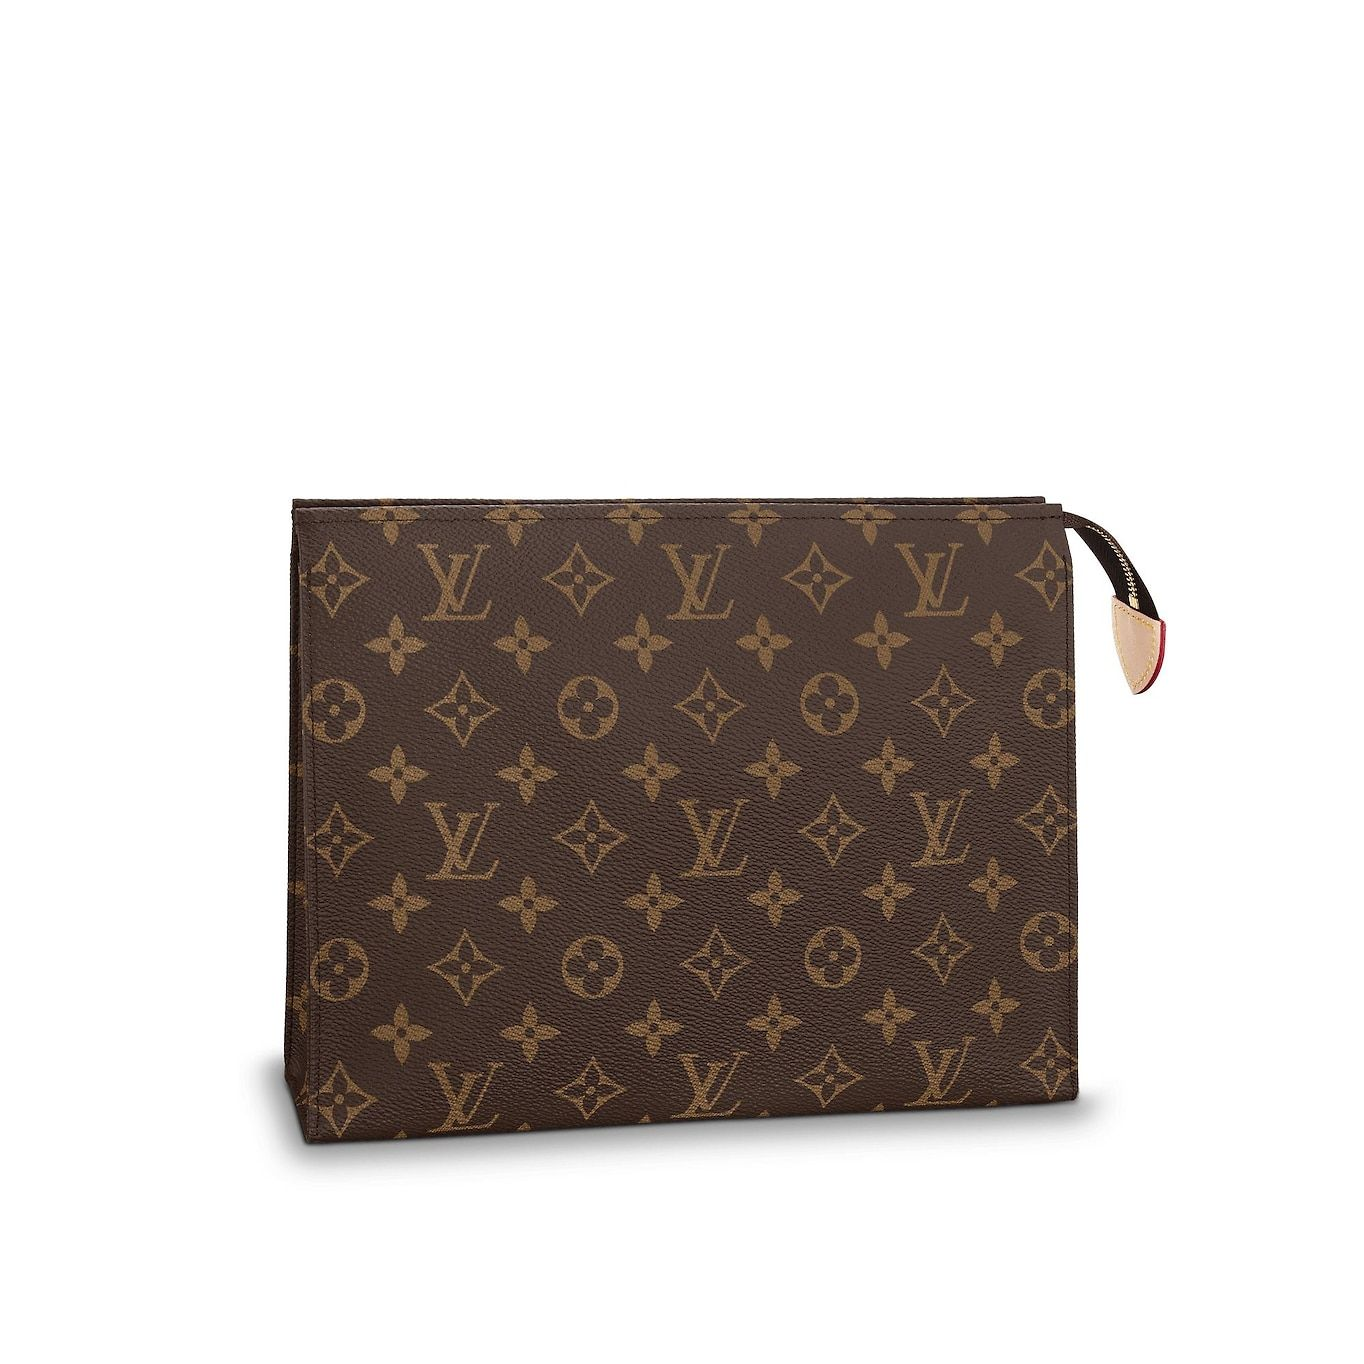 cc5c83036a5a Monogram TRAVEL All Collections Toiletry Pouch 26